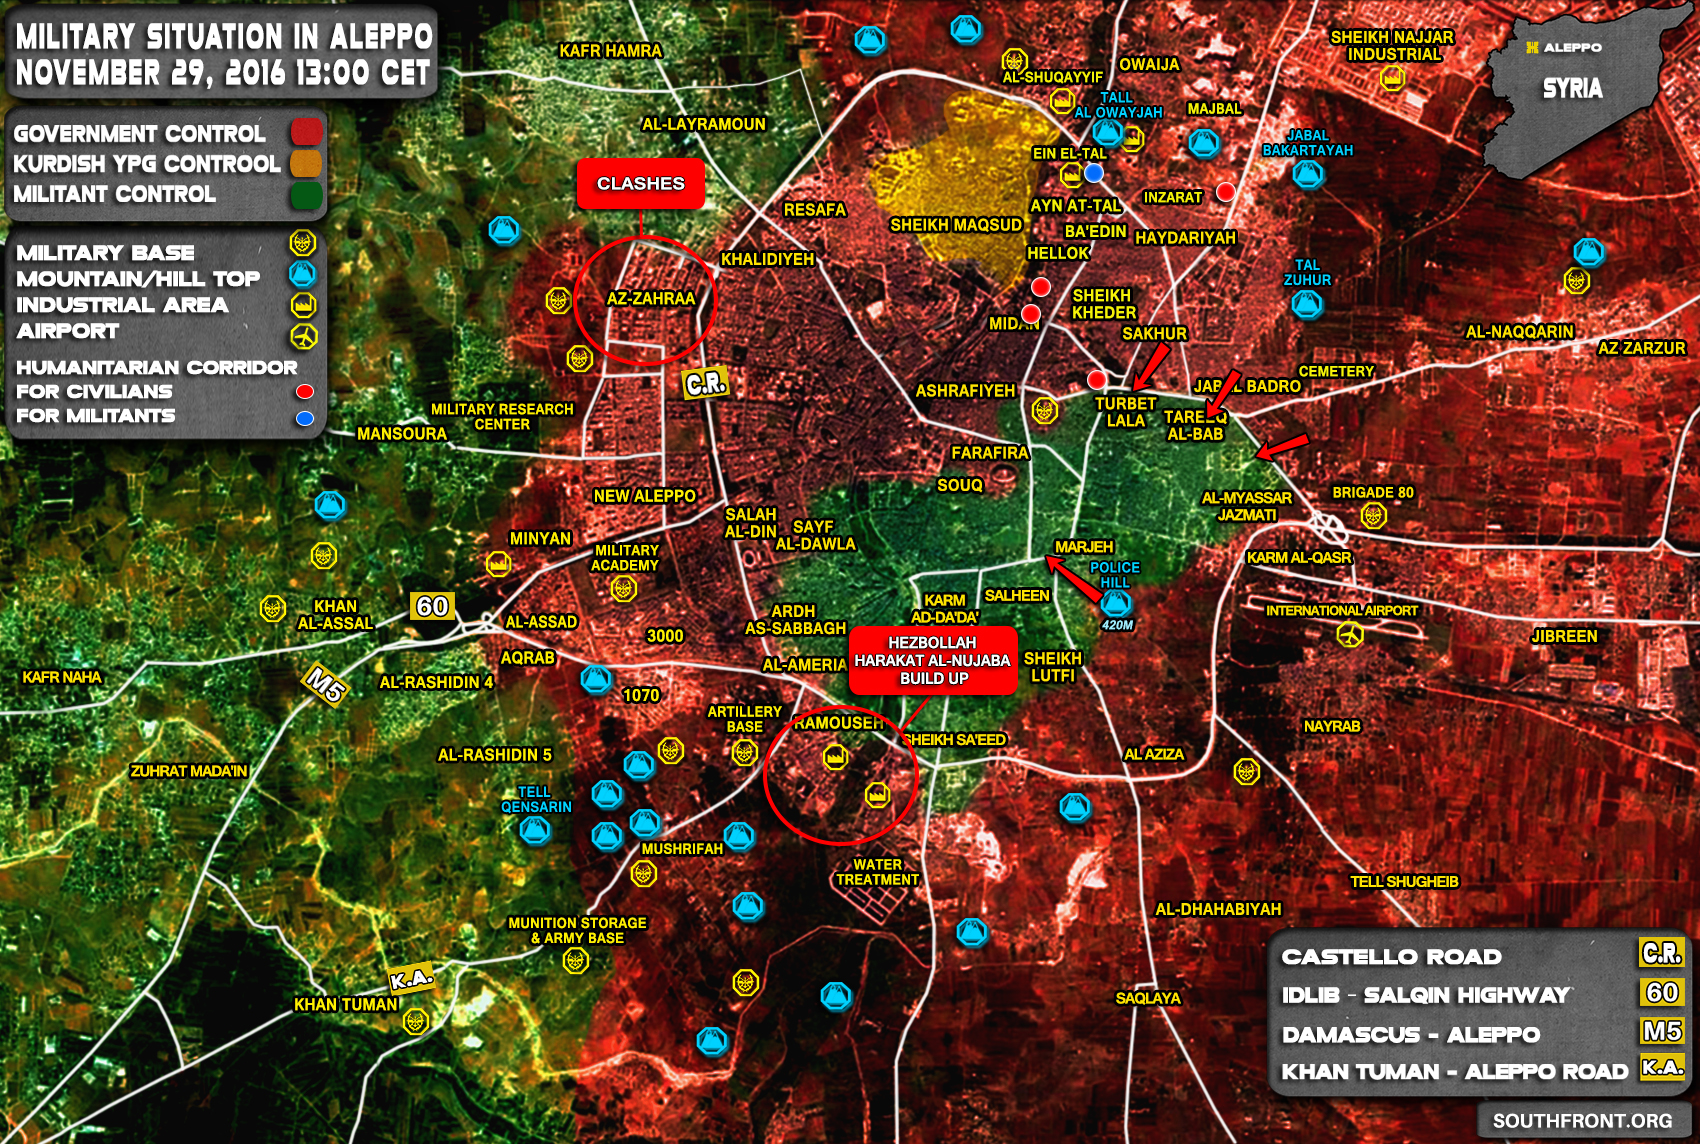 Overview of Military Situation in Aleppo City on November 29, 2016